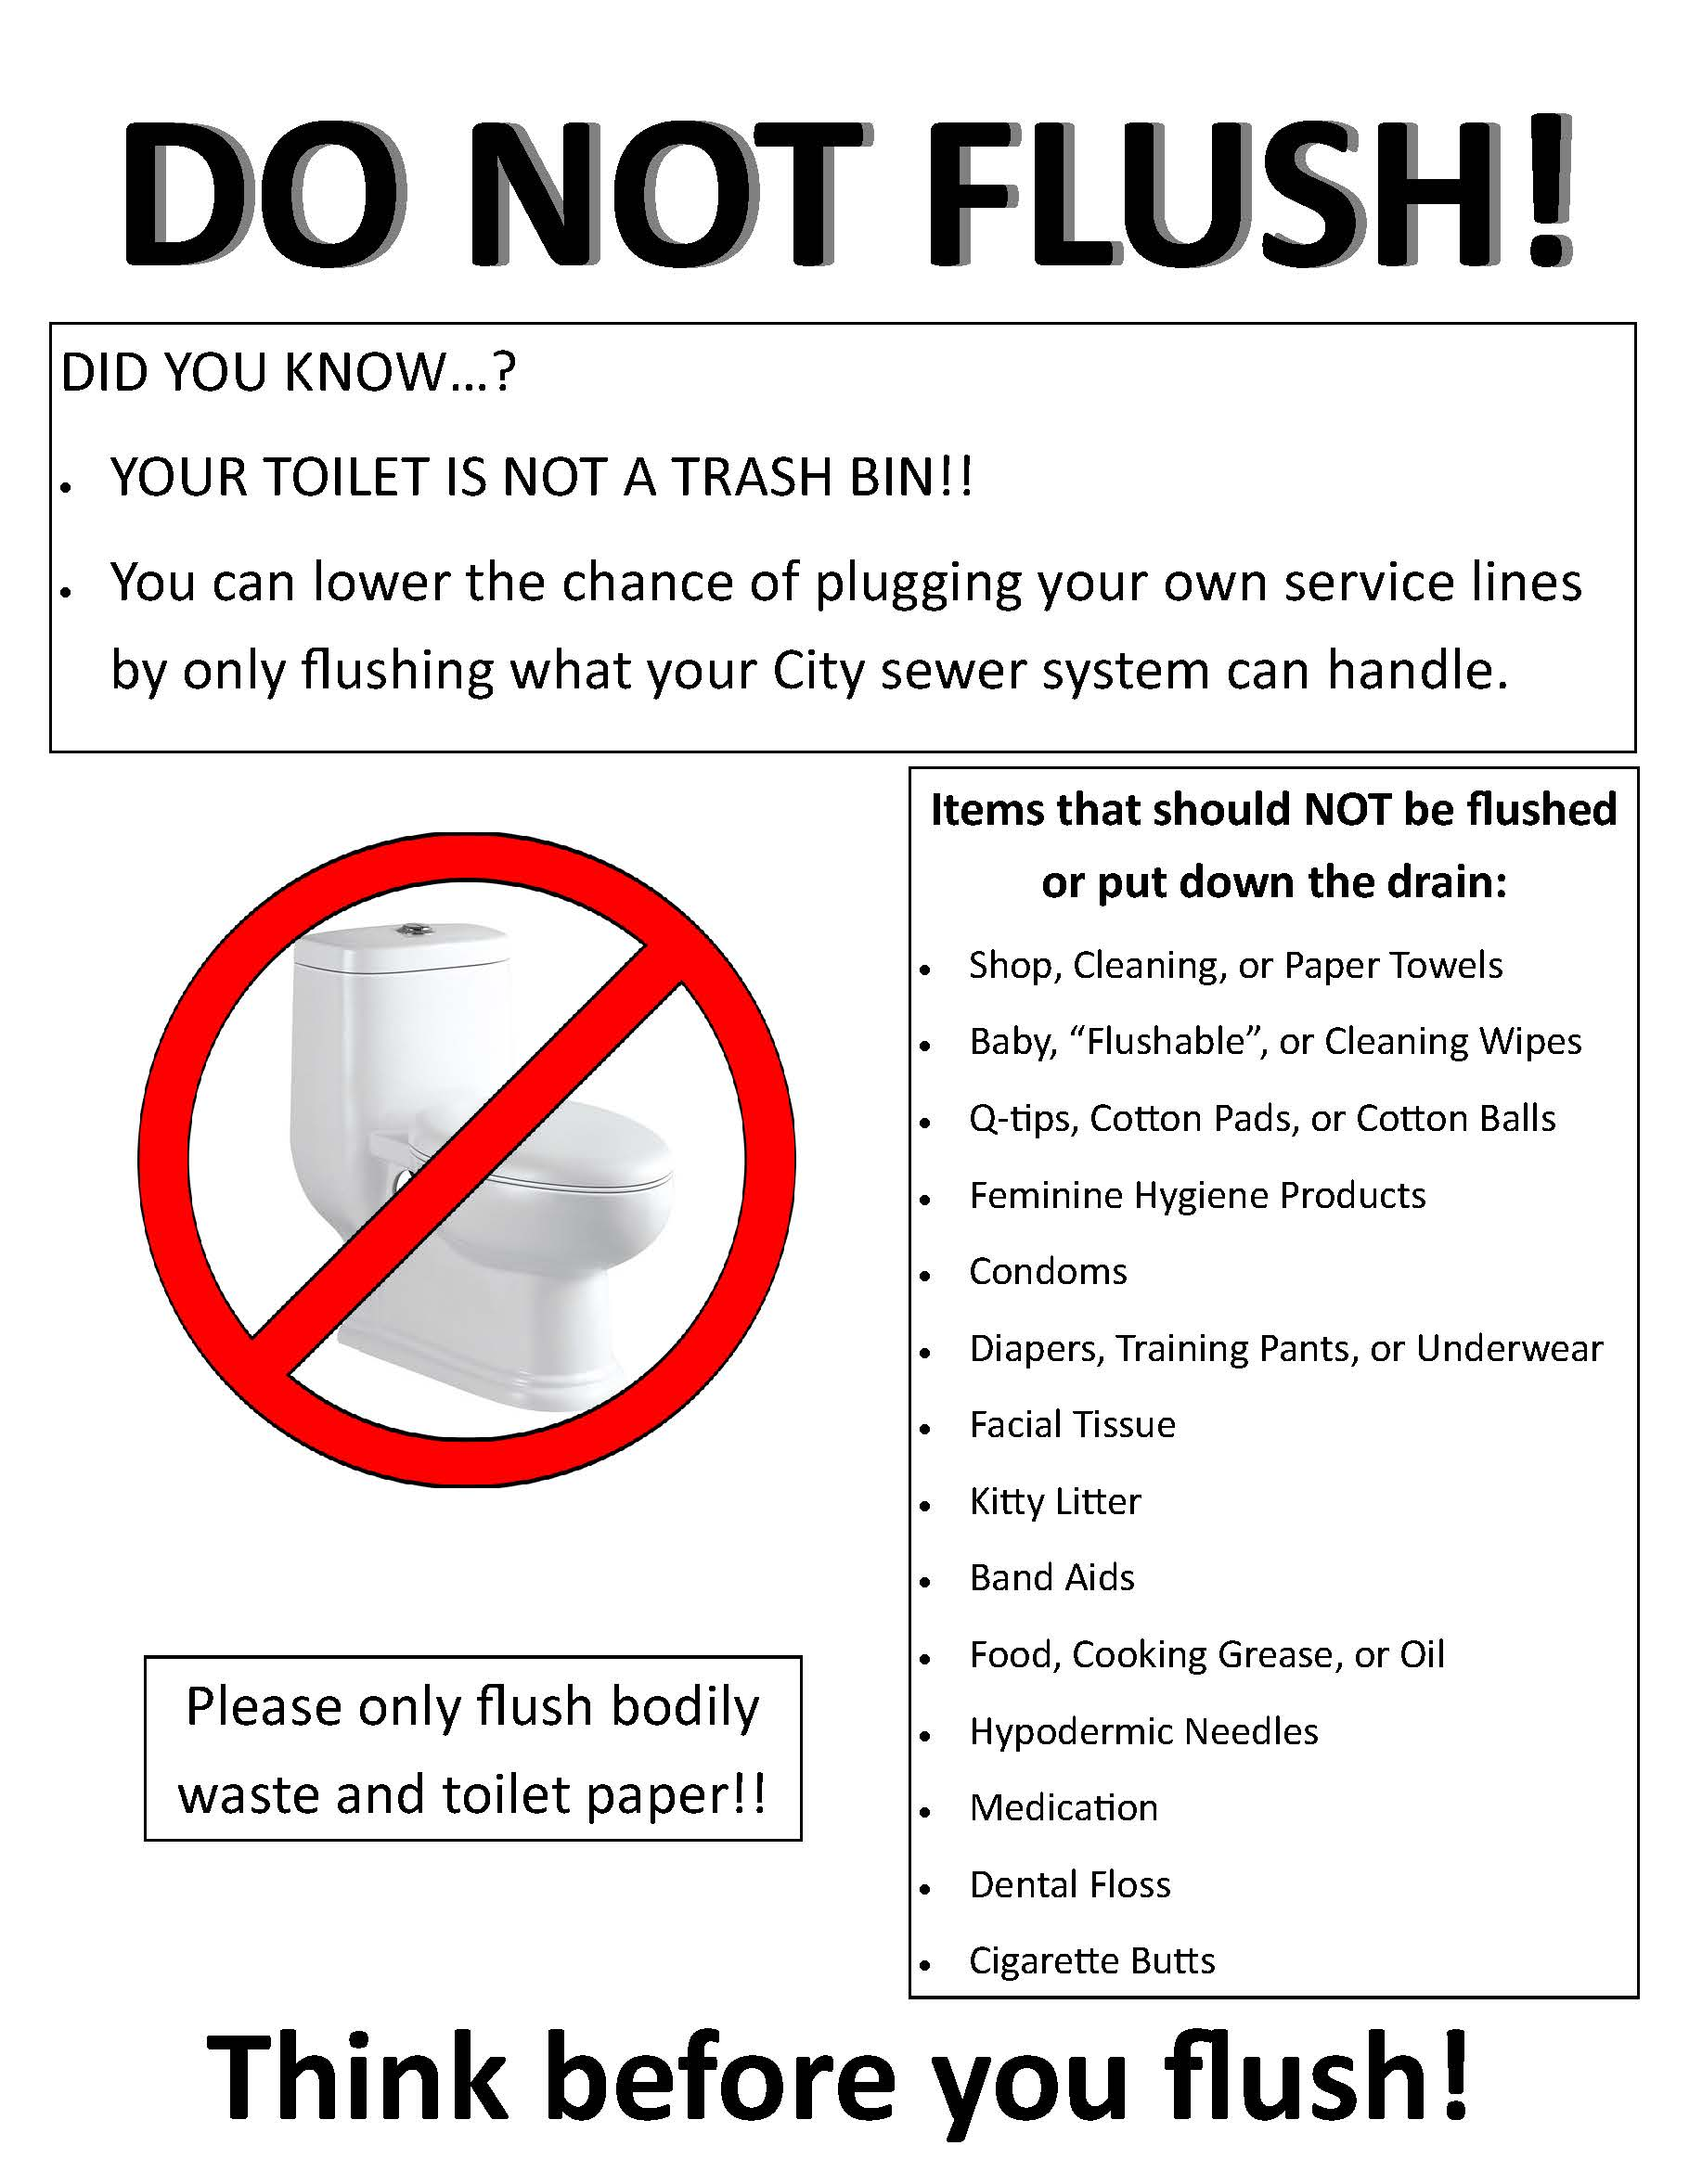 List of items that should not be flushed